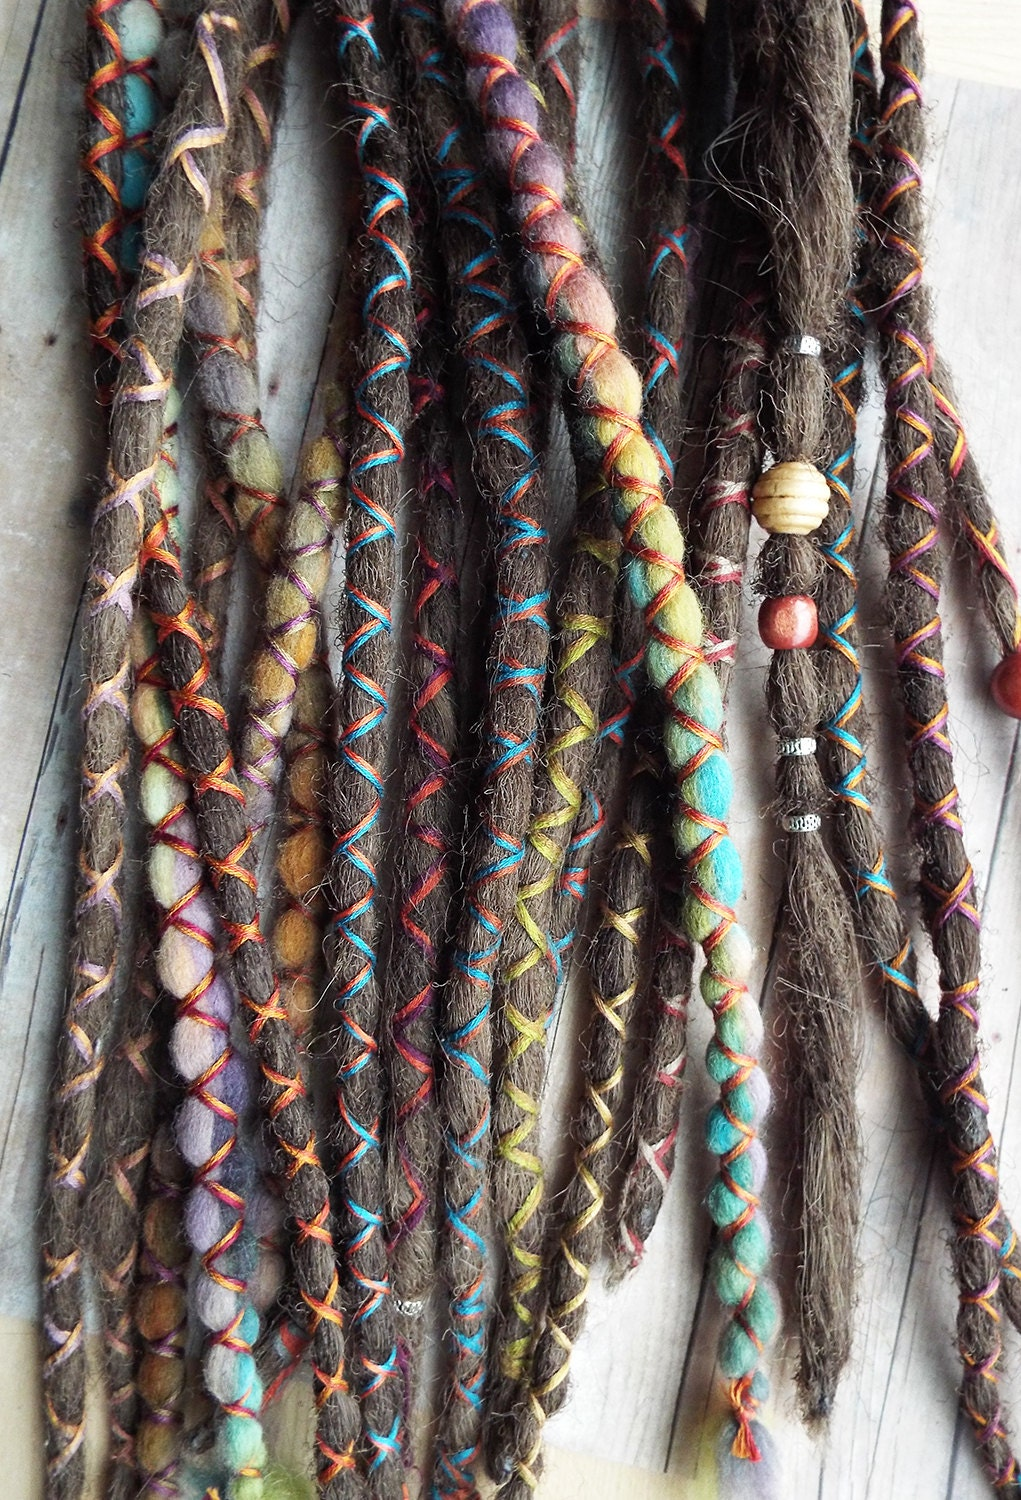 Colorful Hair Beads